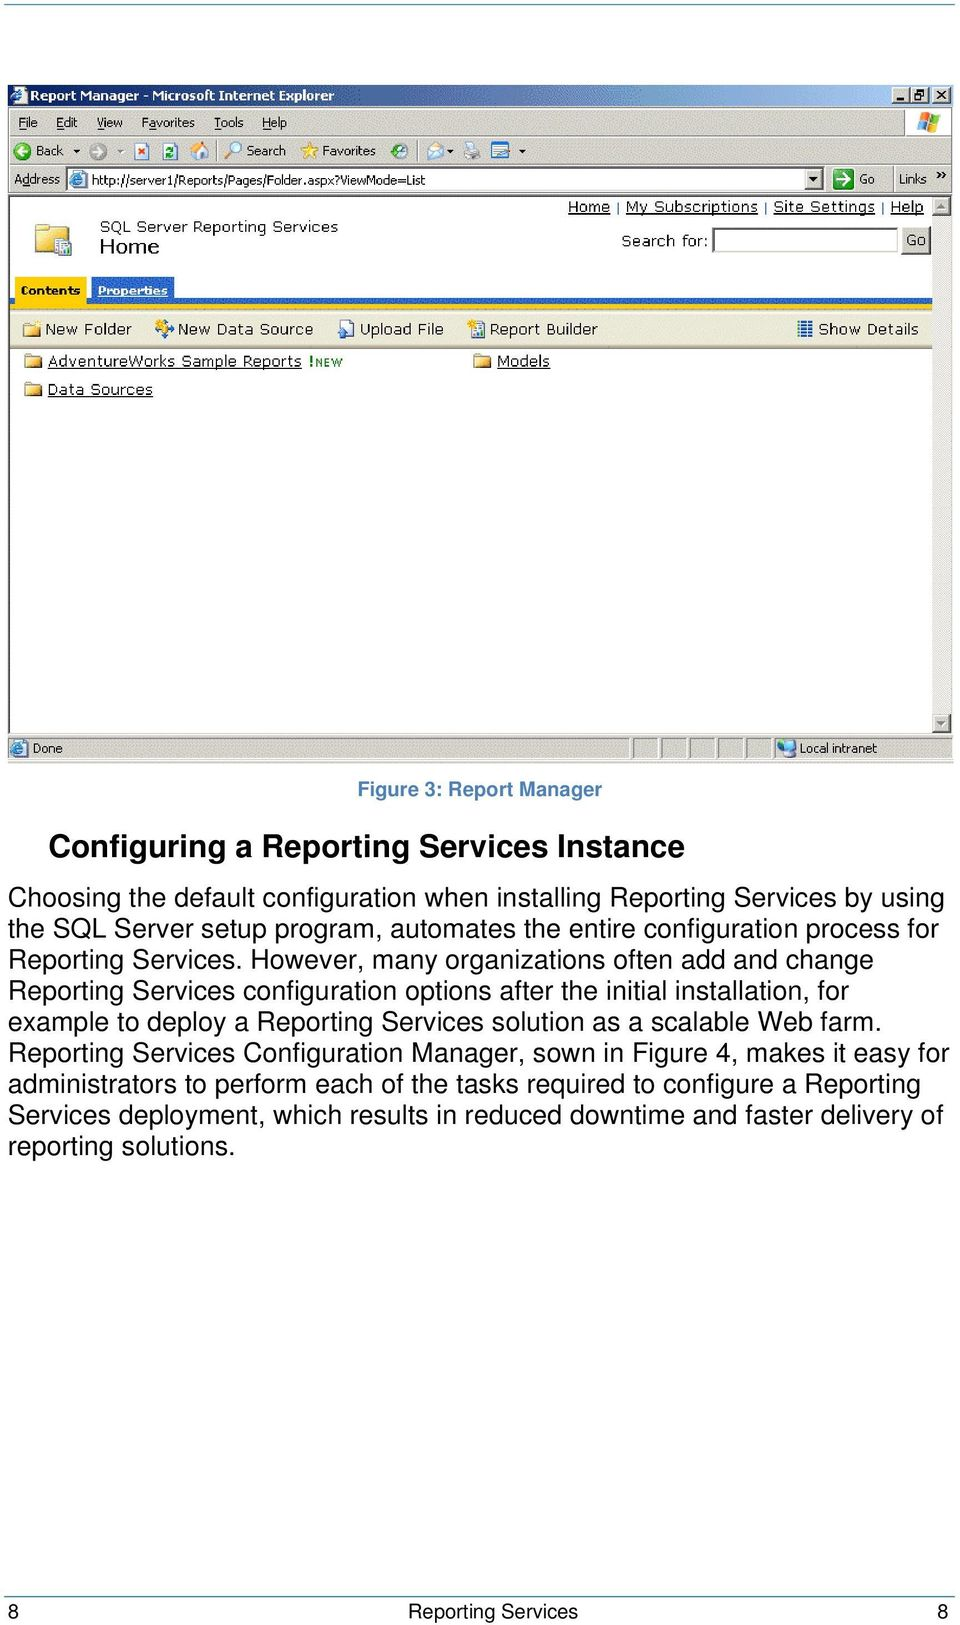 However, many organizations often add and change Reporting Services configuration options after the initial installation, for example to deploy a Reporting Services solution as a